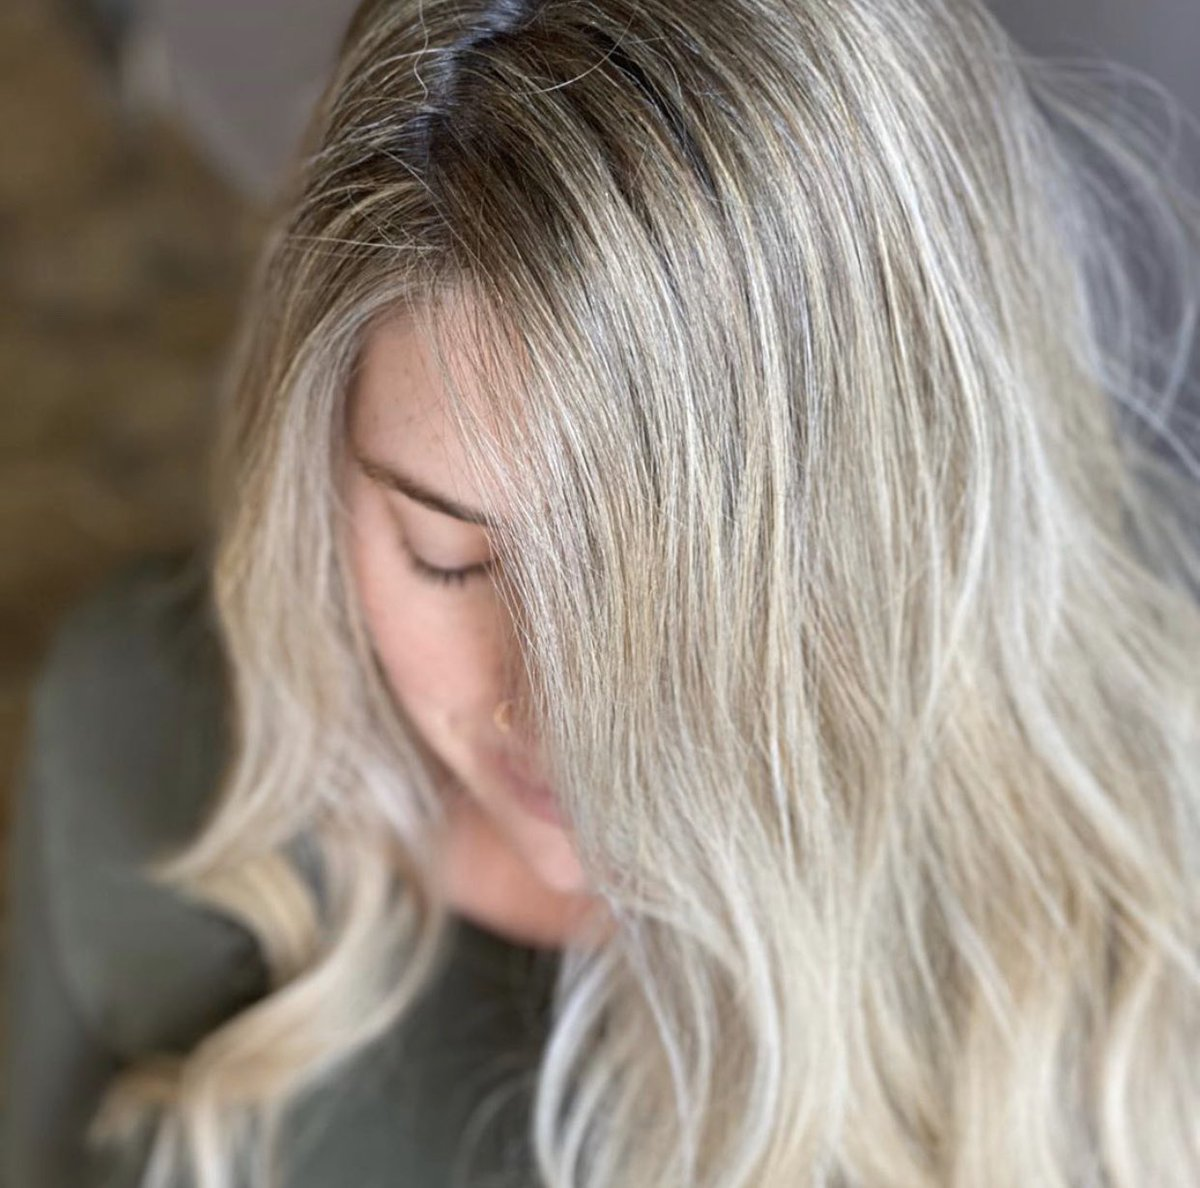 Light and bright for this momma to be Stylist: Tanya Burdick  #wsalonrochester #blonde #highlights #behindthechair #mommatobe #roctopstylepic.twitter.com/wQBBXbLmEo